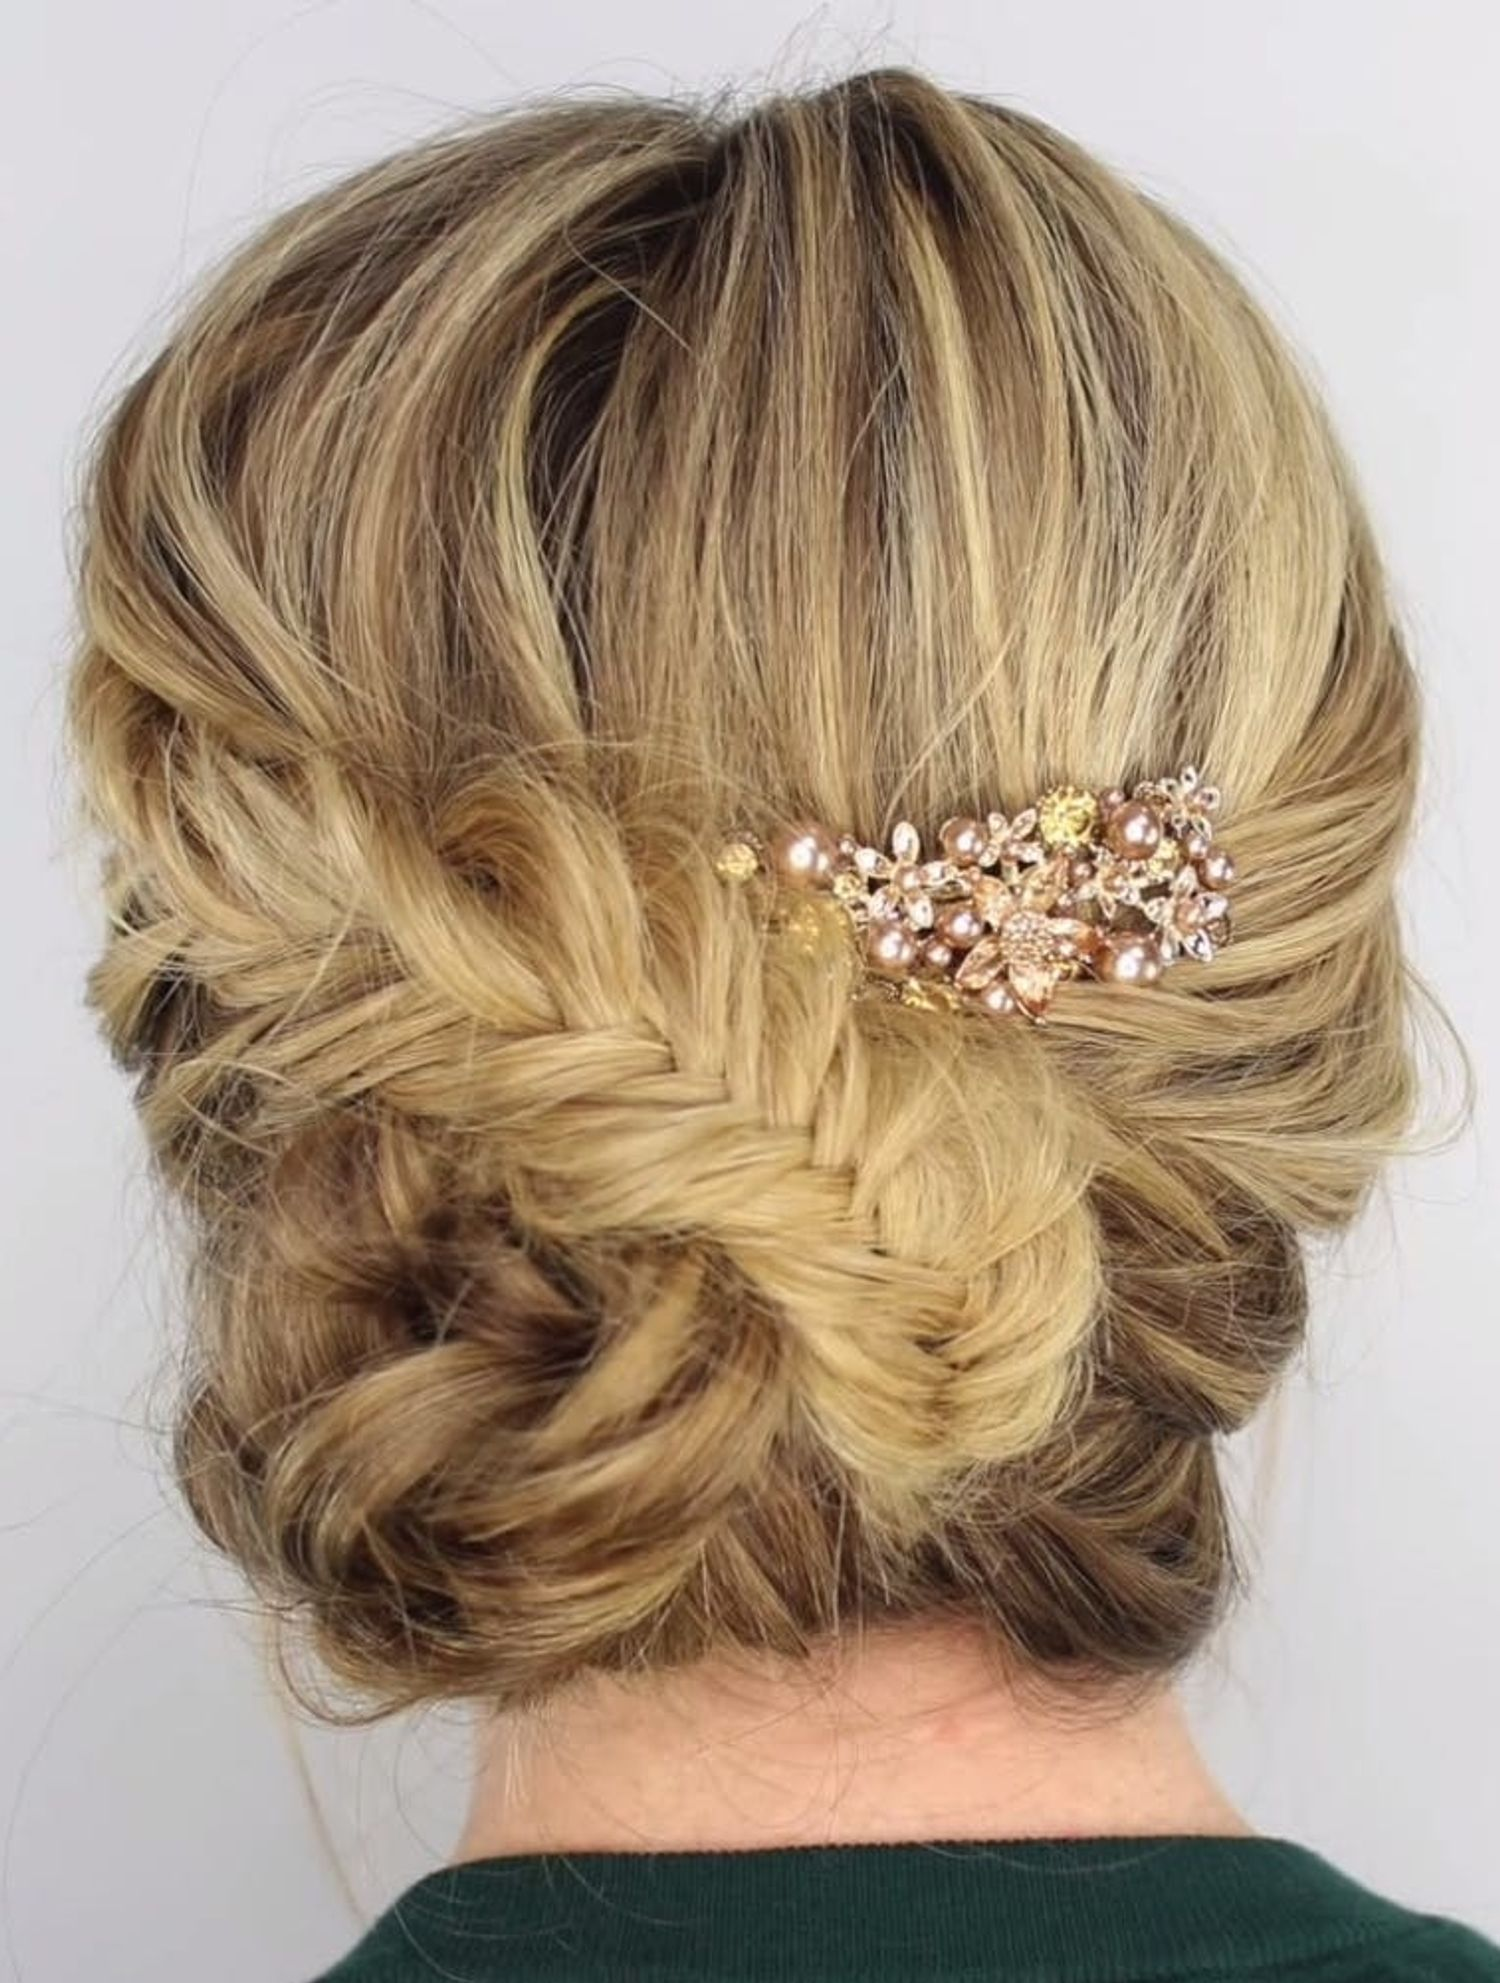 17 Formal Hairstyles That Are Surprisingly Easy to DIY